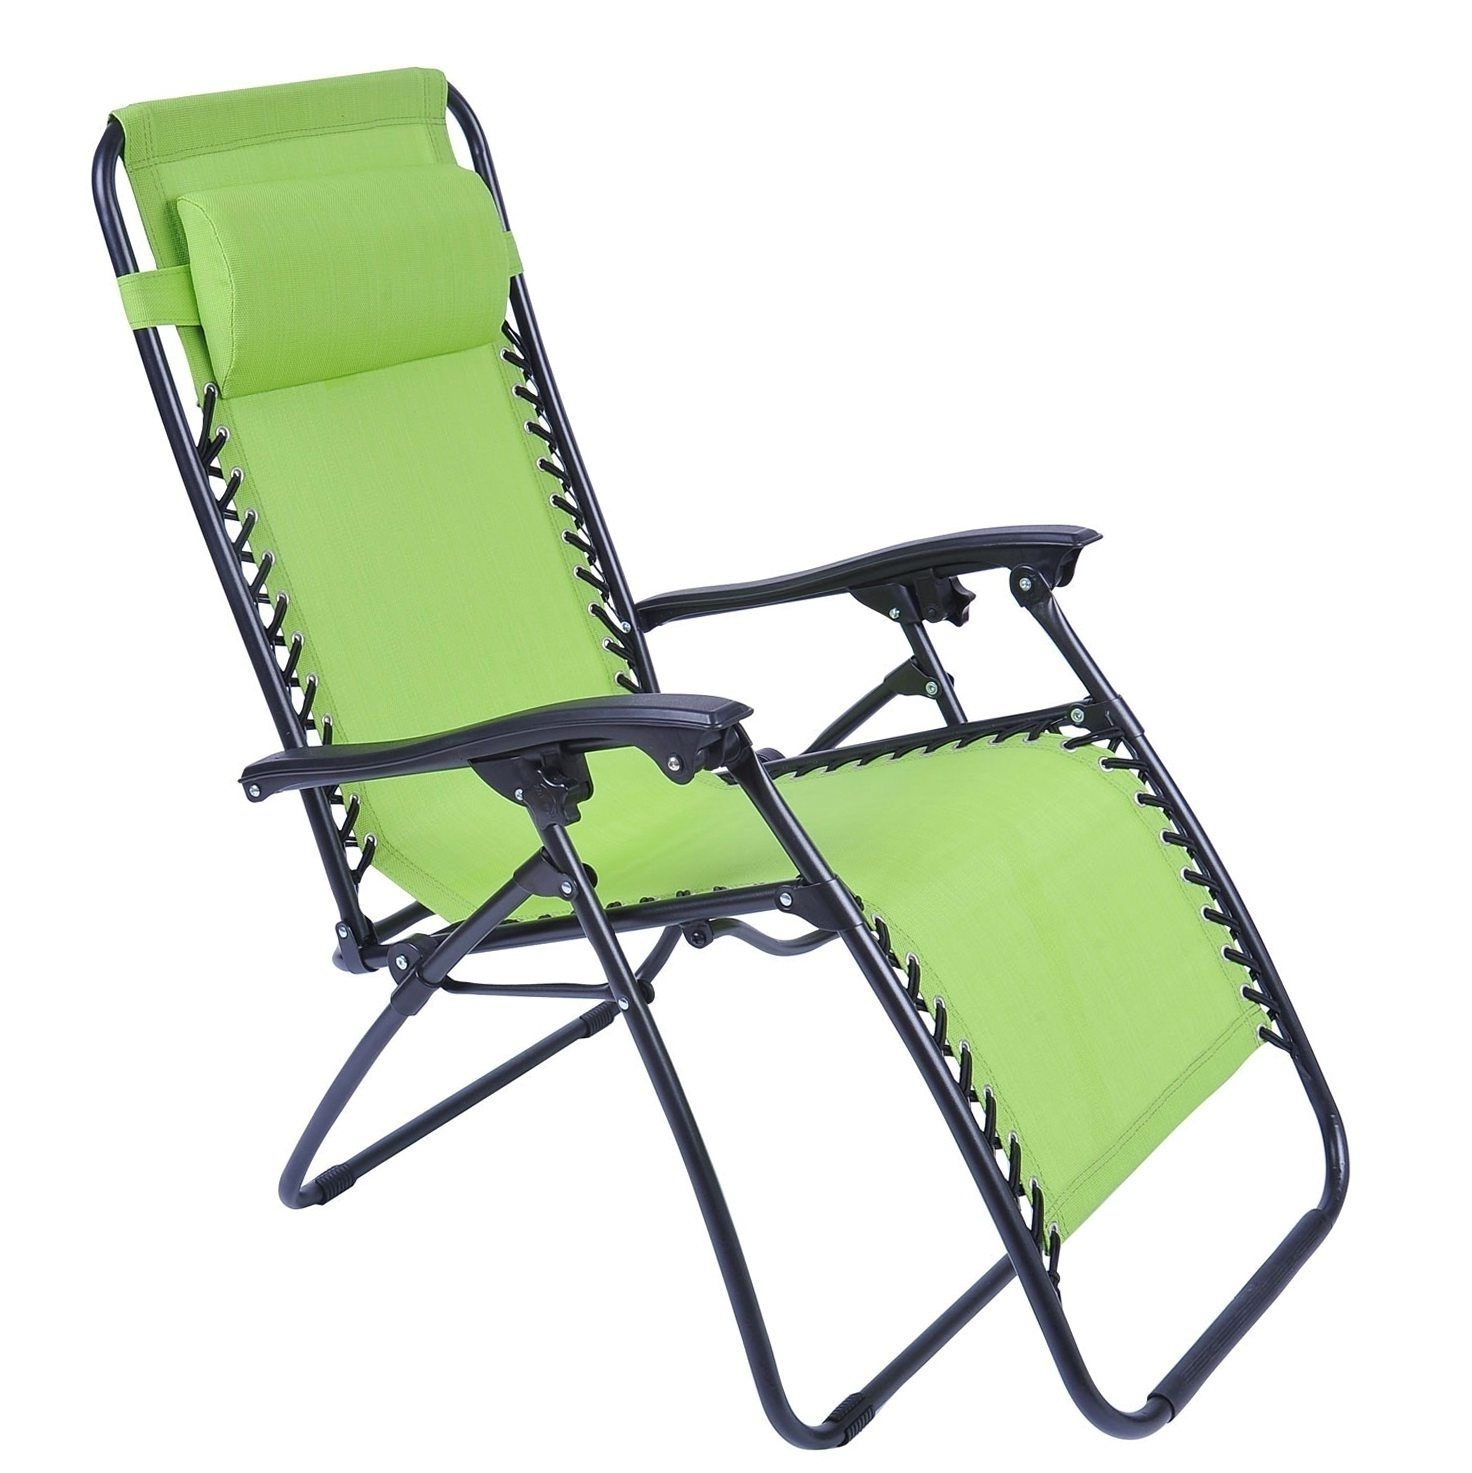 2019 latest folding chaise lounge lawn chairs. Black Bedroom Furniture Sets. Home Design Ideas